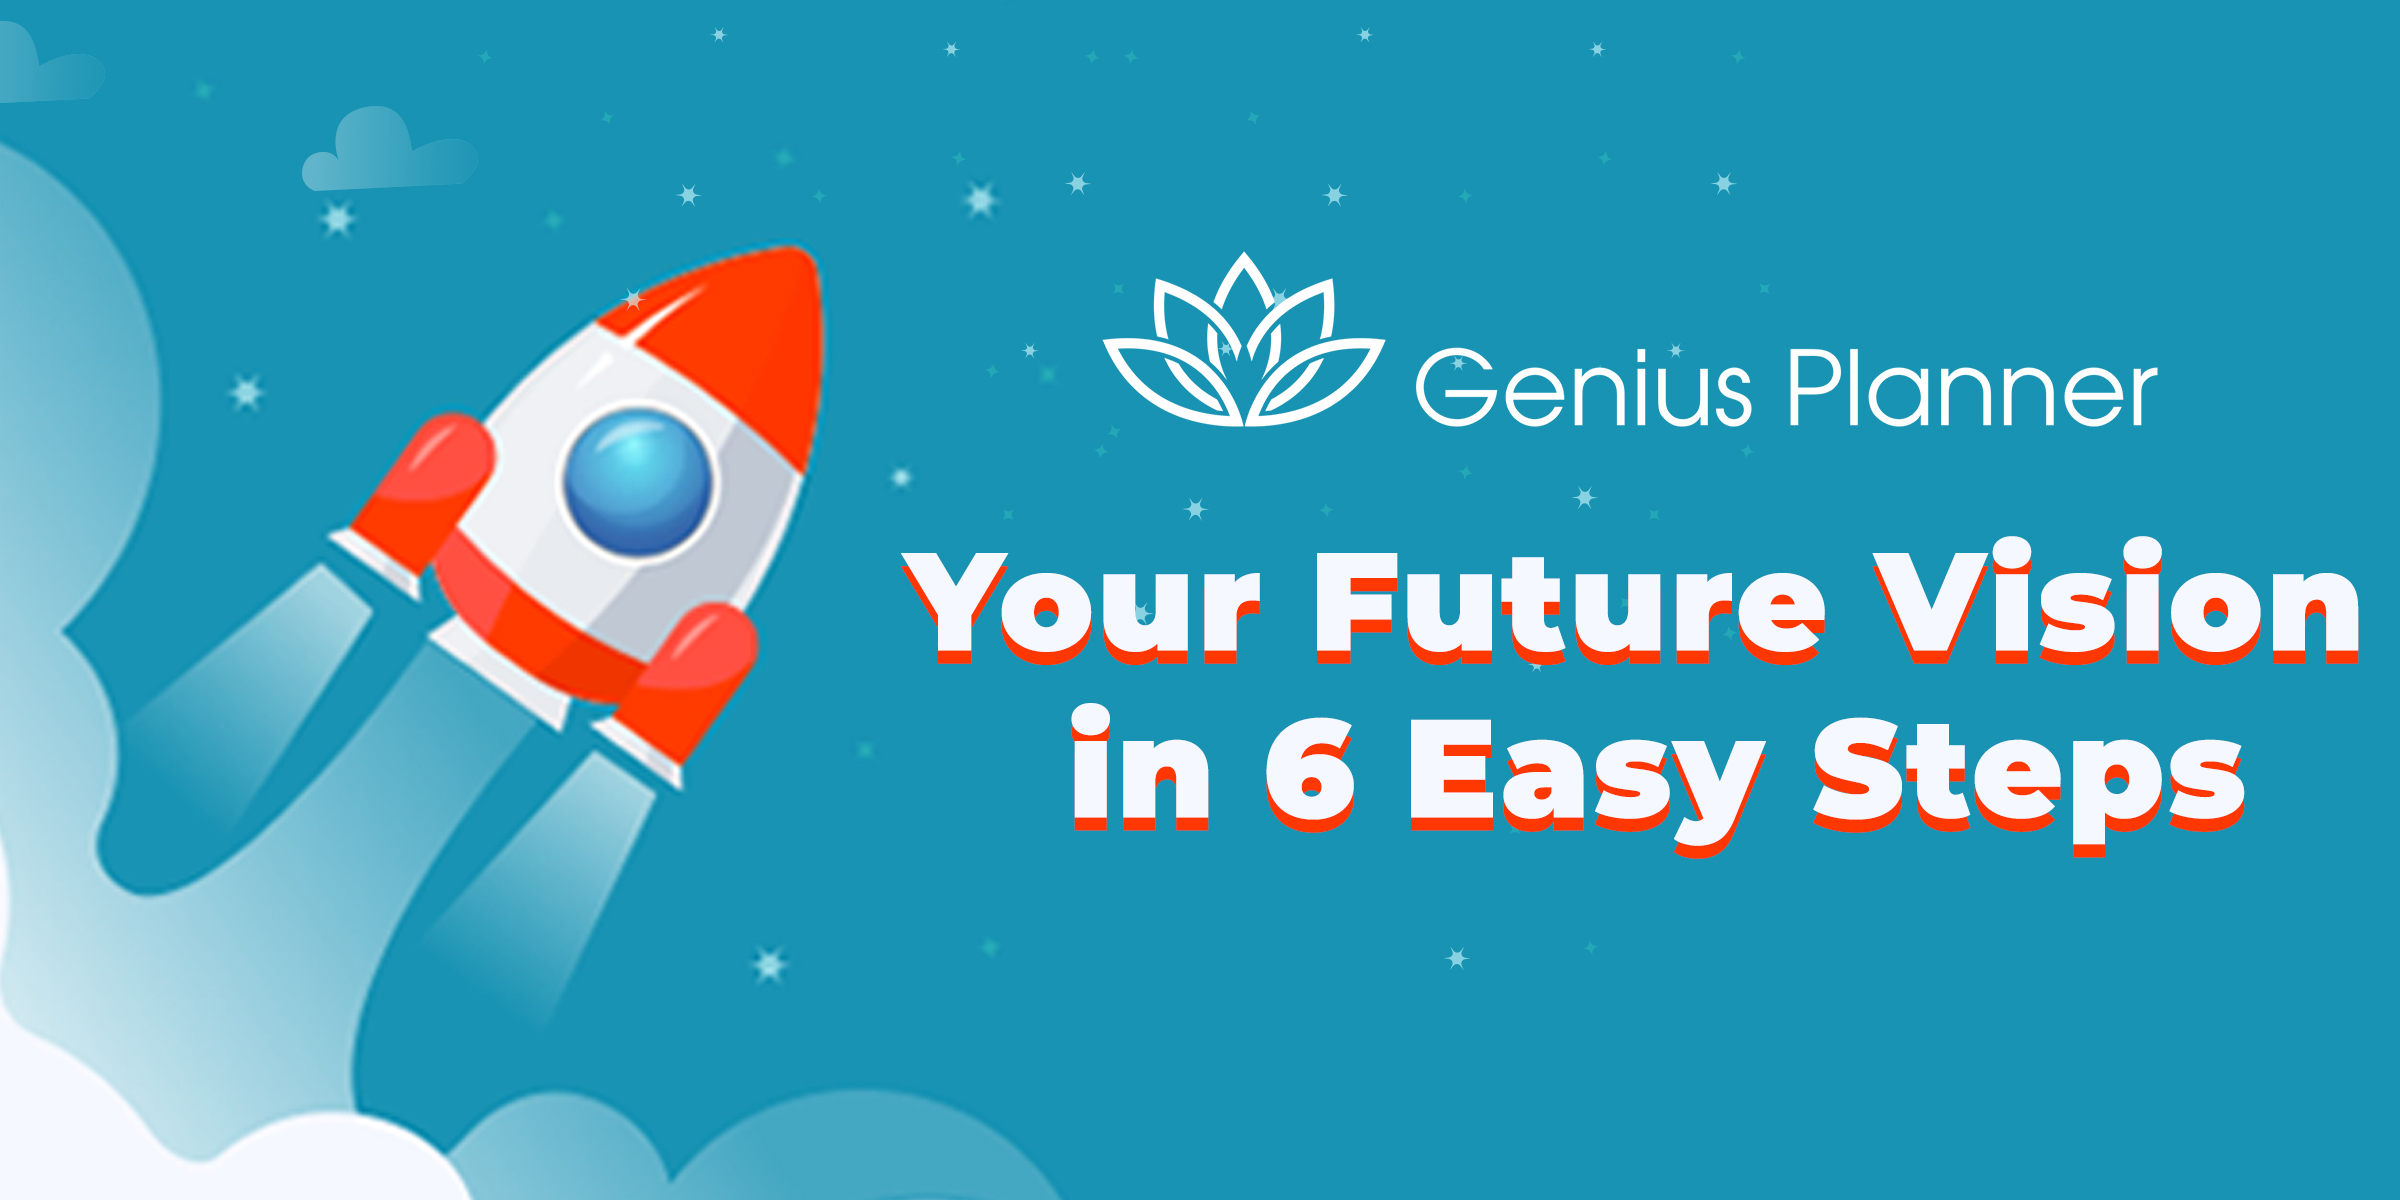 Your Future Vision in 6 Easy Steps